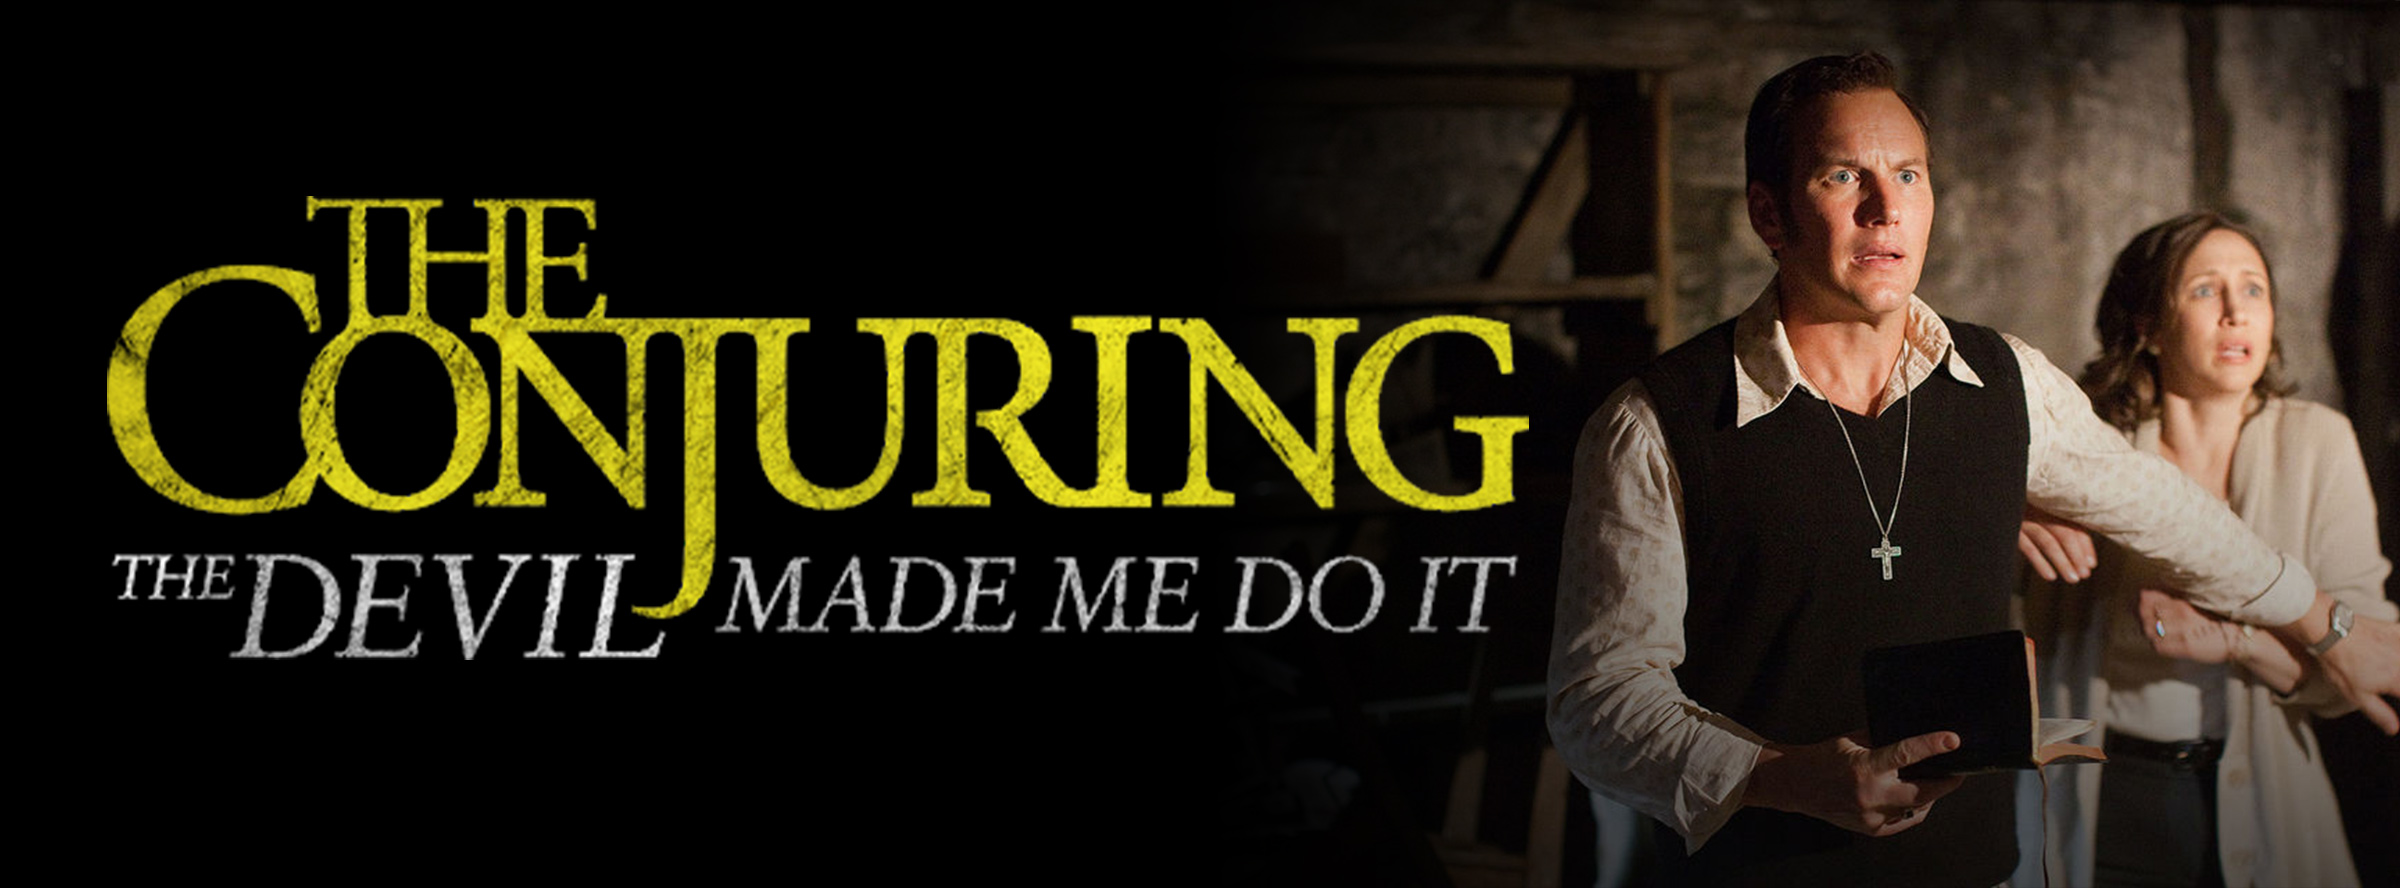 Slider Image for The Conjuring: The Devil Made Me Do It